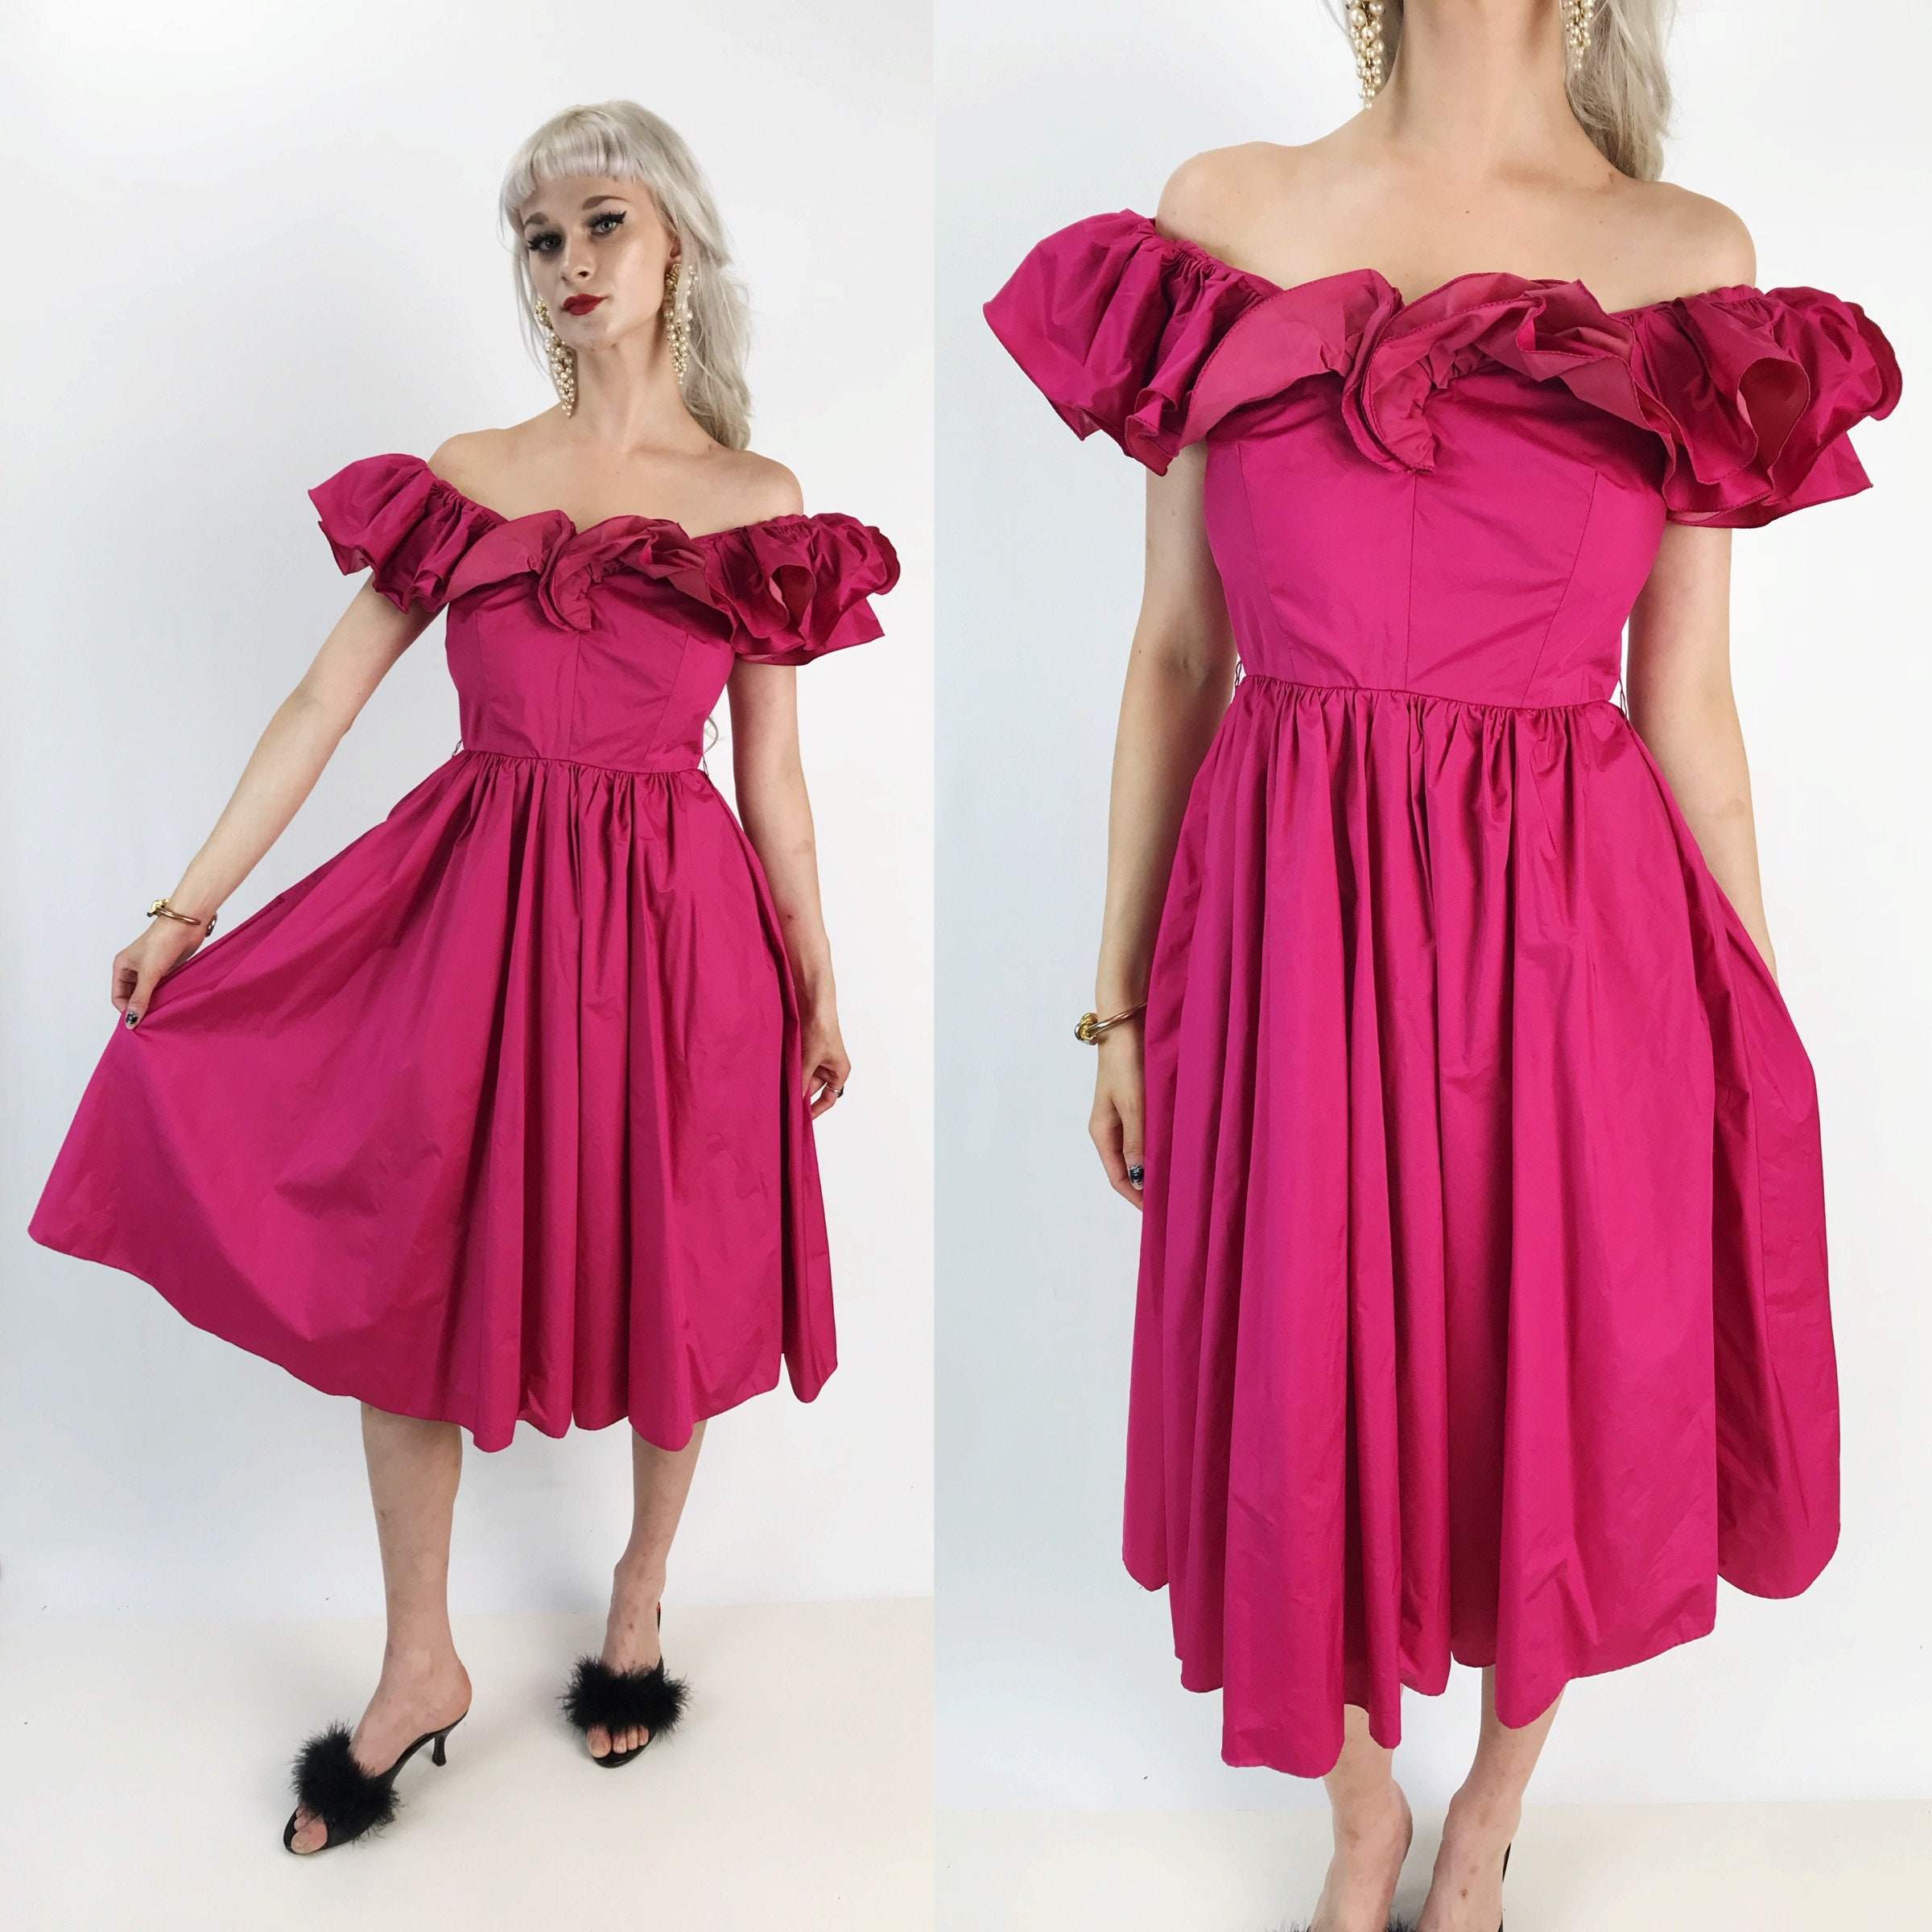 80\'s Hot Pink Girly Ruffle Midi Prom Party Dress Small - Pink Off ...